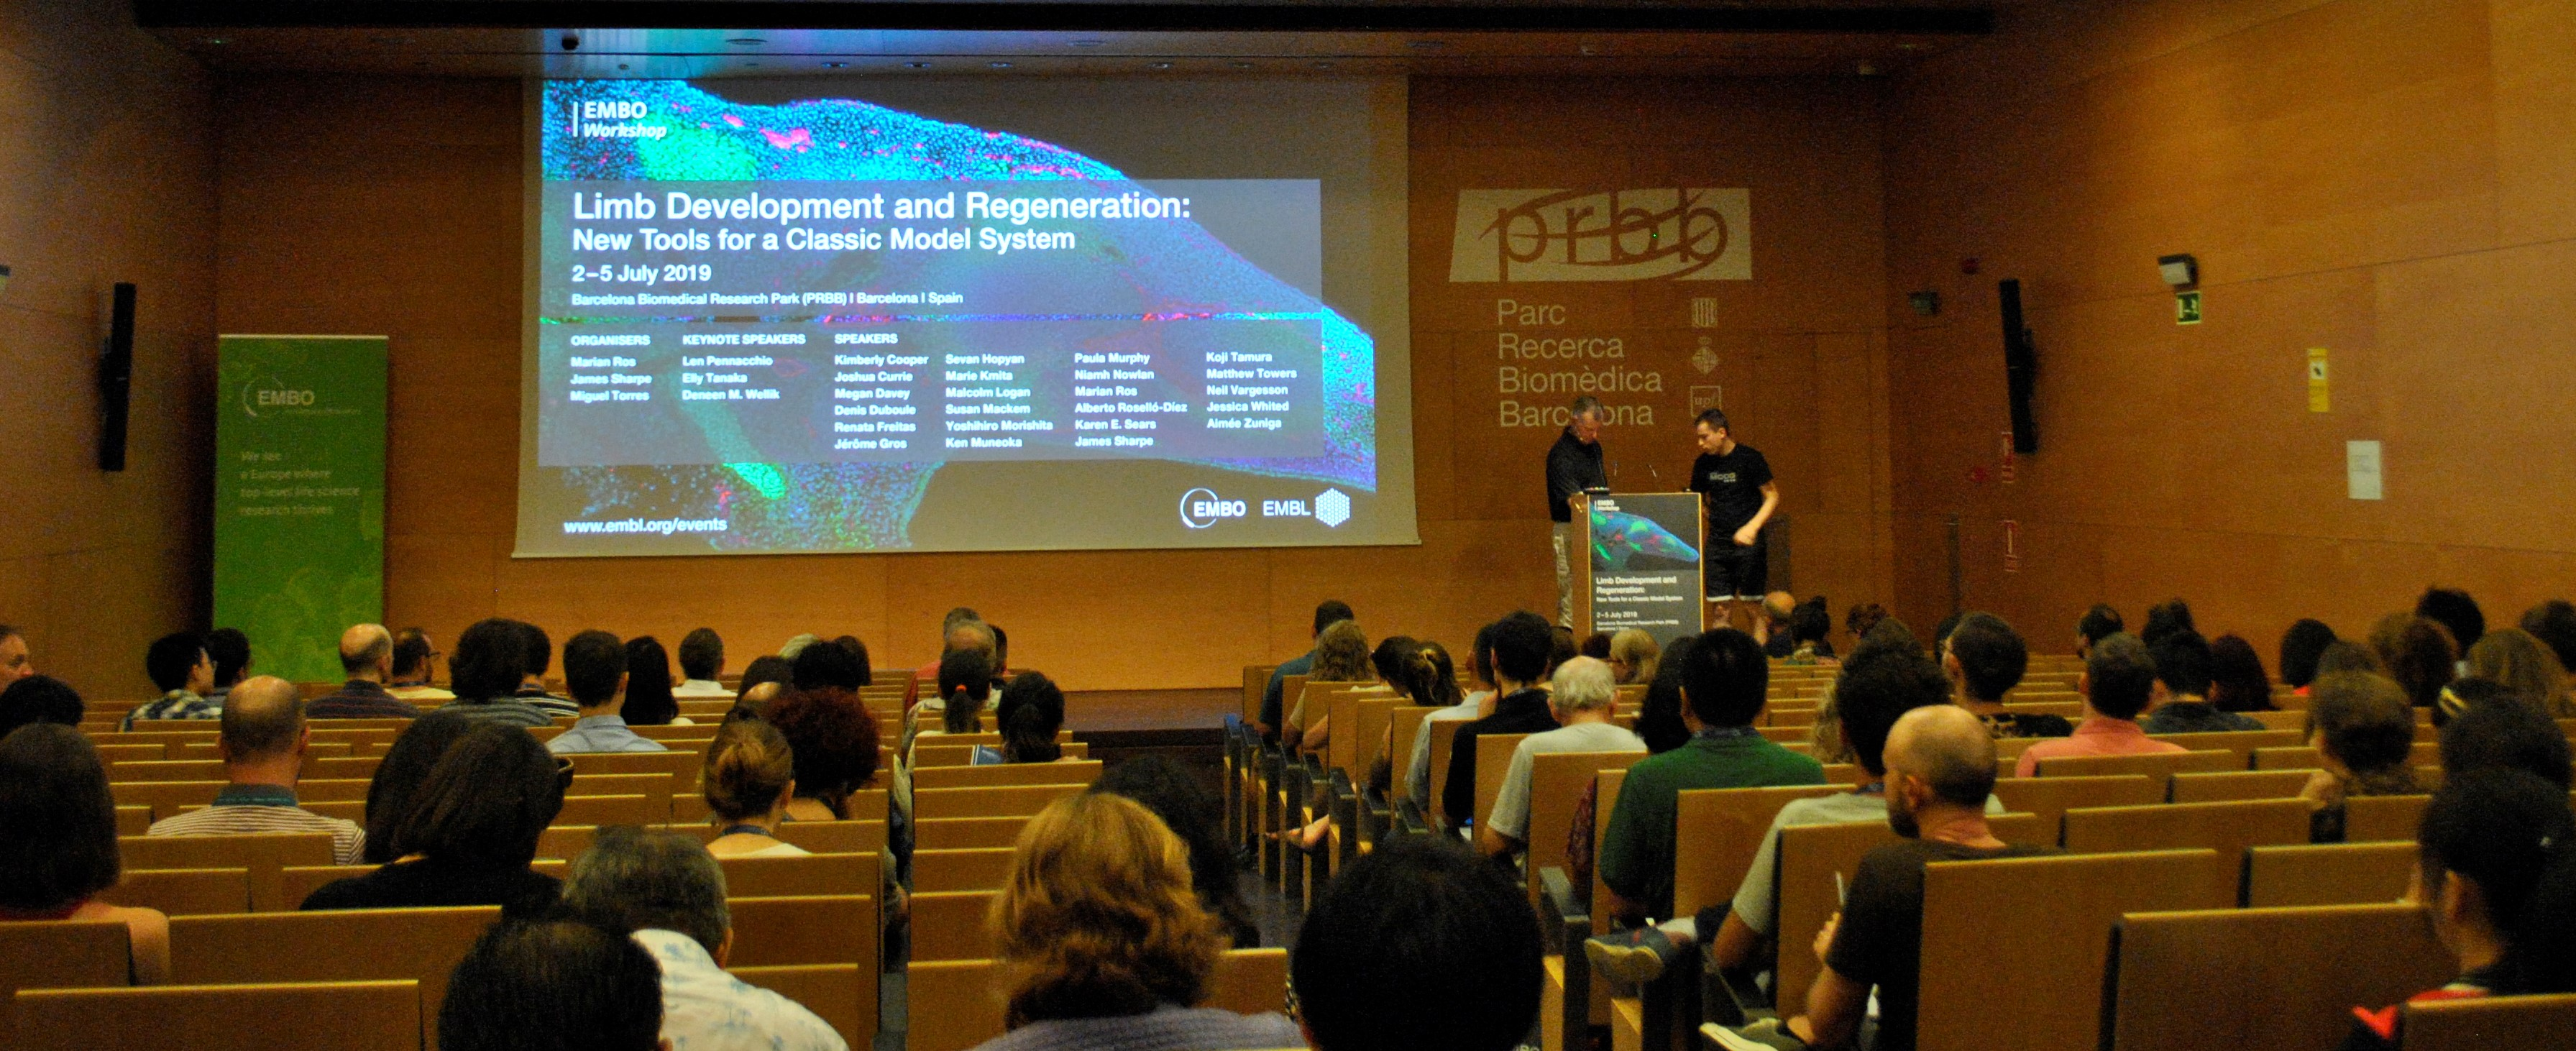 More than 150 researchers met at the PRBB Auditorium for the Limb Development and Regeneration Meeting.